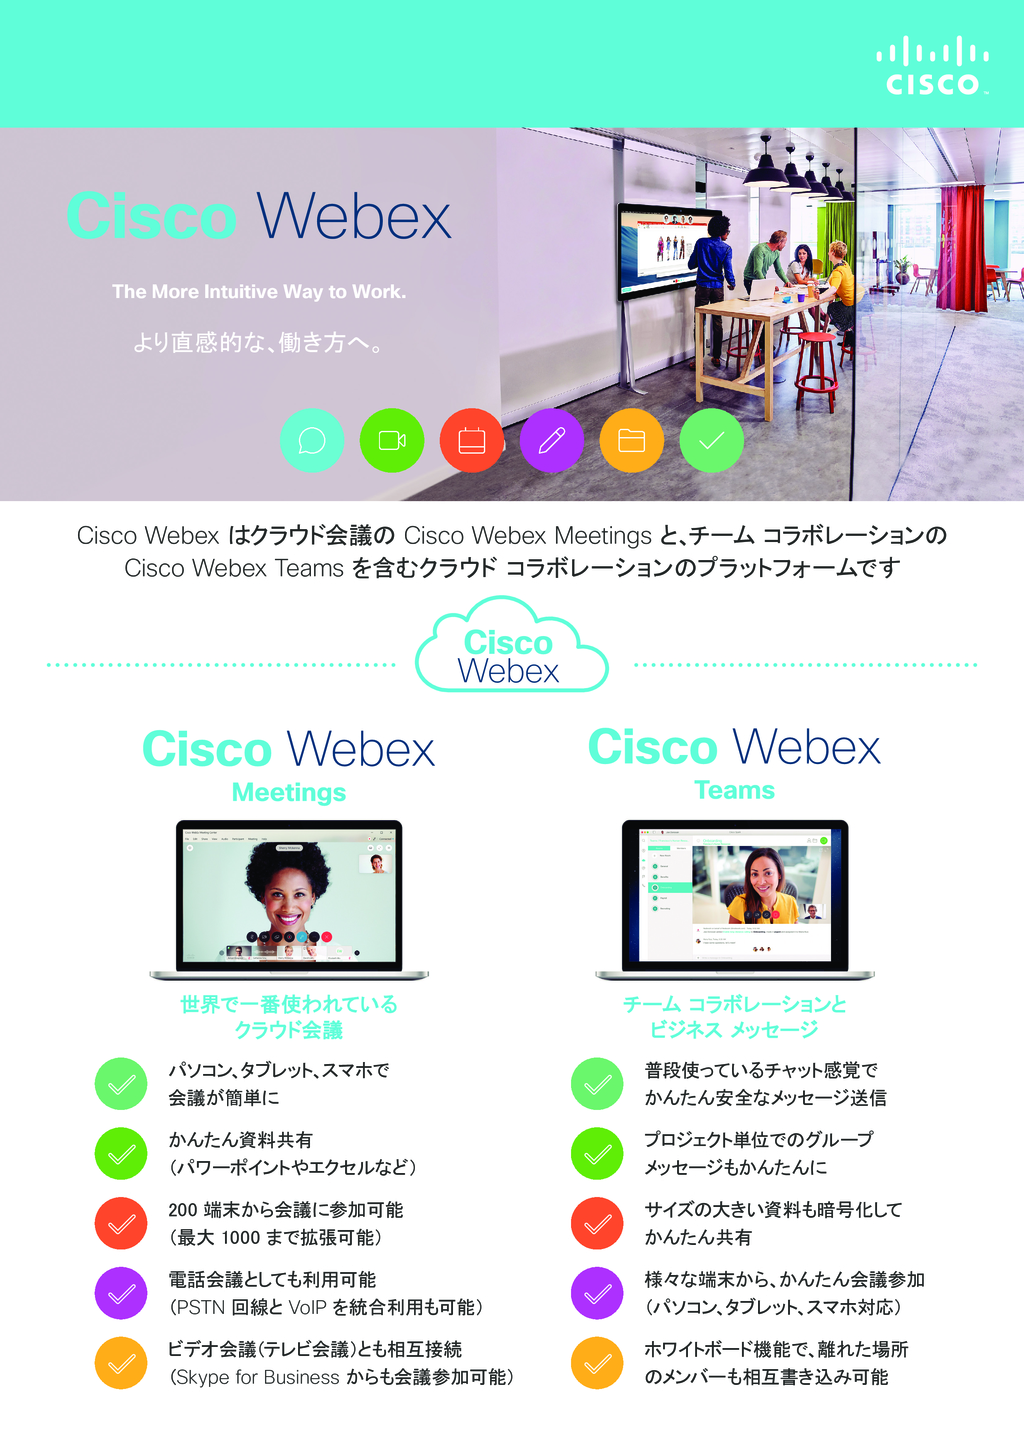 Cisco Webex meetingsの資料